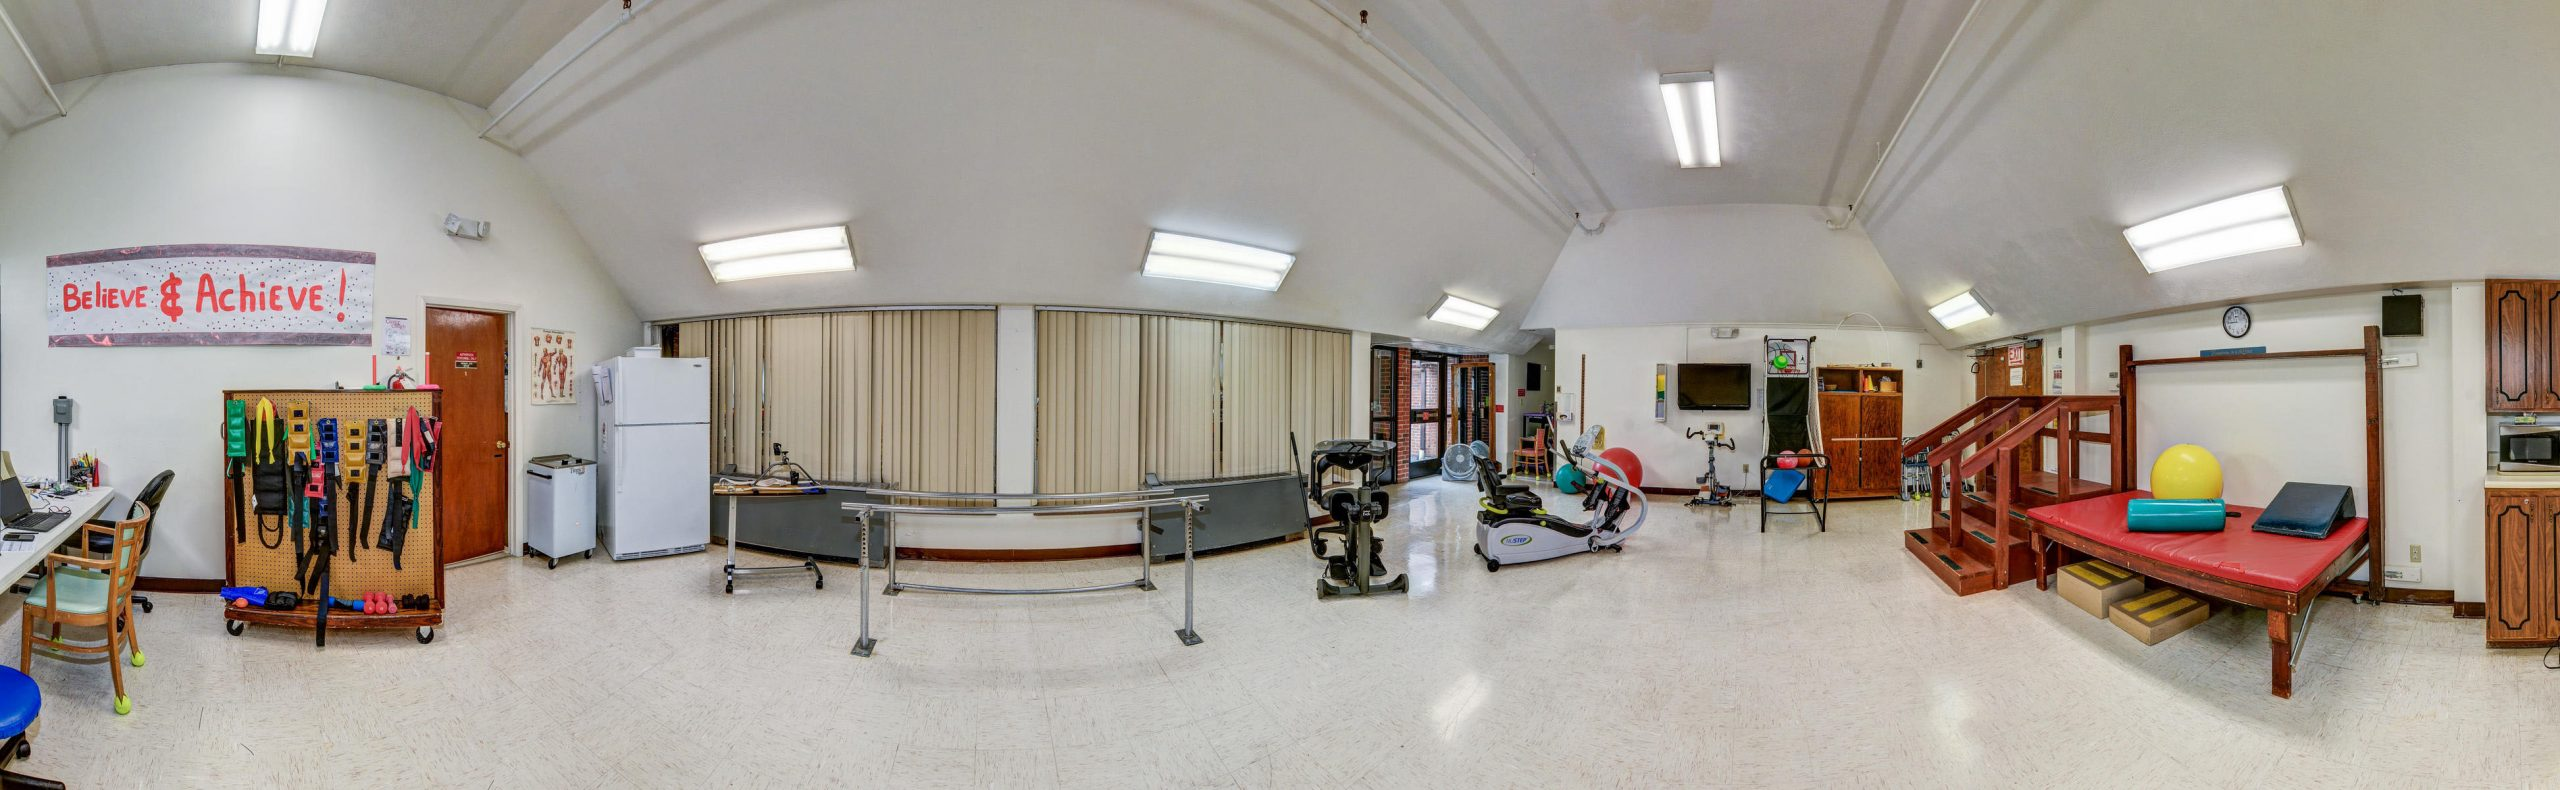 Panoramic view of Stonerise Princeton Therapy and Rehabilitation room with equipment